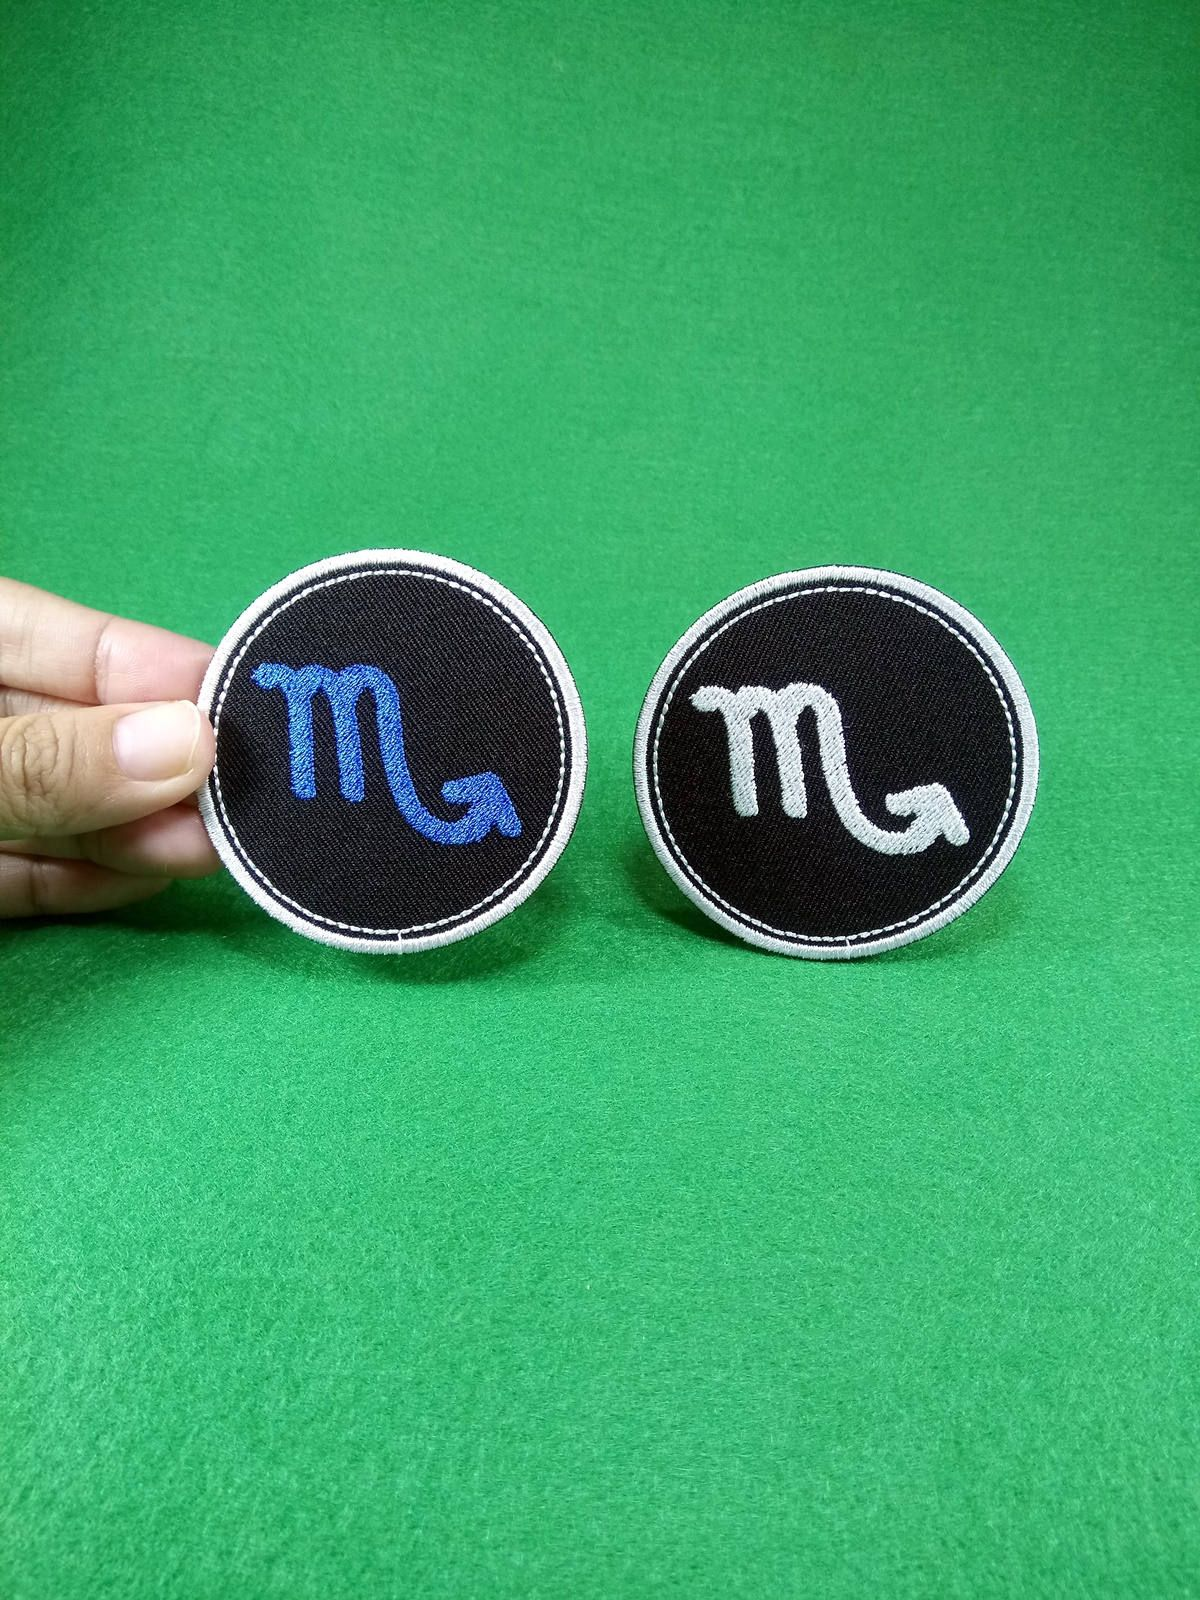 Scorpio Zodiac Sign Water Element Astrology Symbol Embroidery